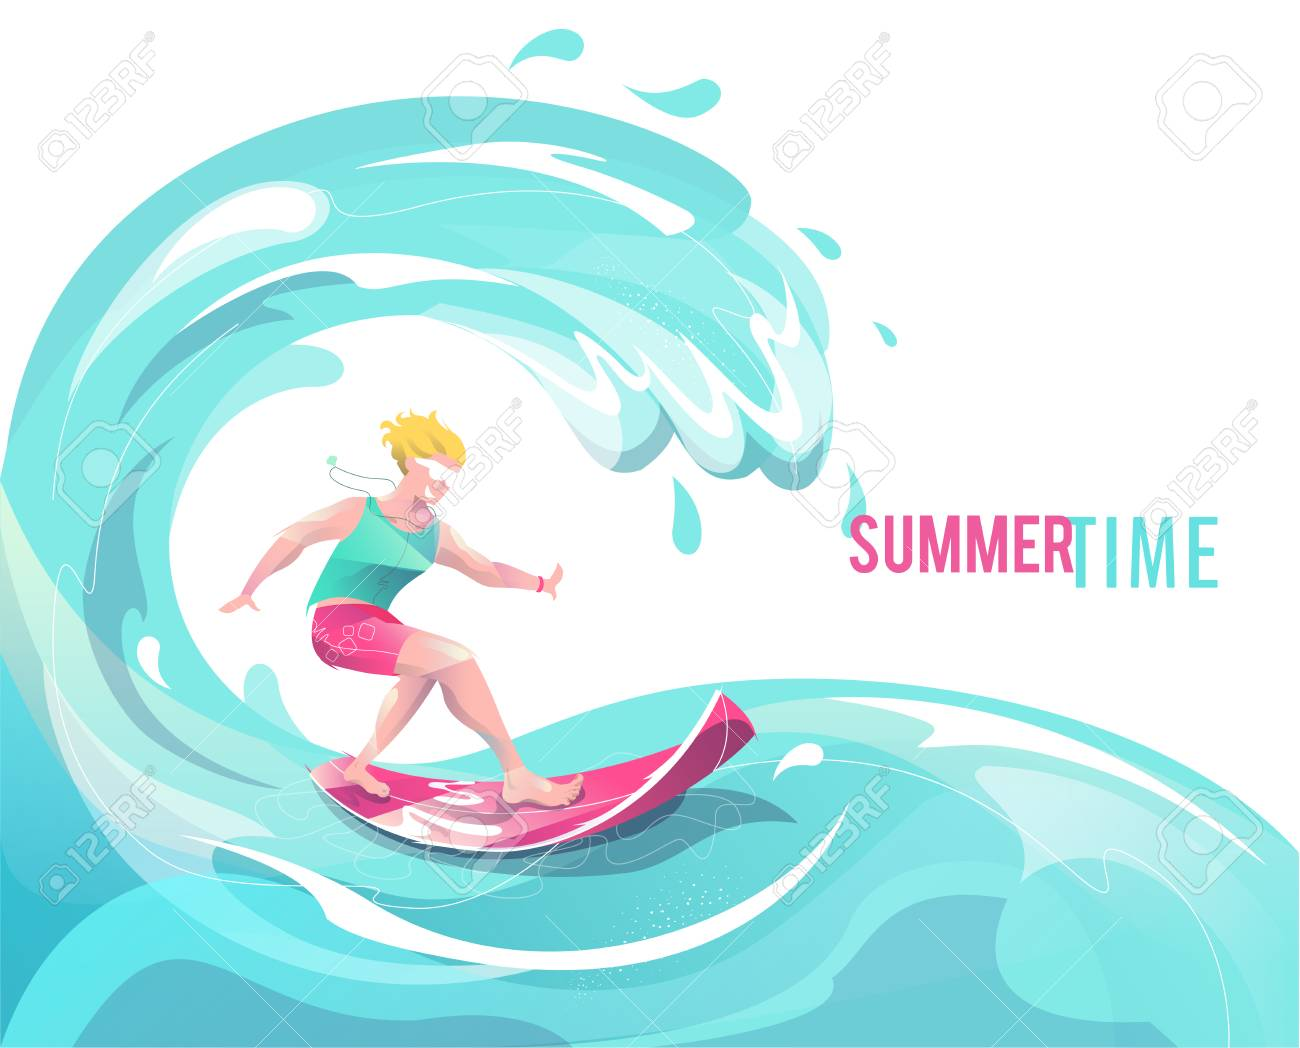 Concept in flat style with surfing man. Vacation, relaxion, extreme. Vector illustration. - 122413453